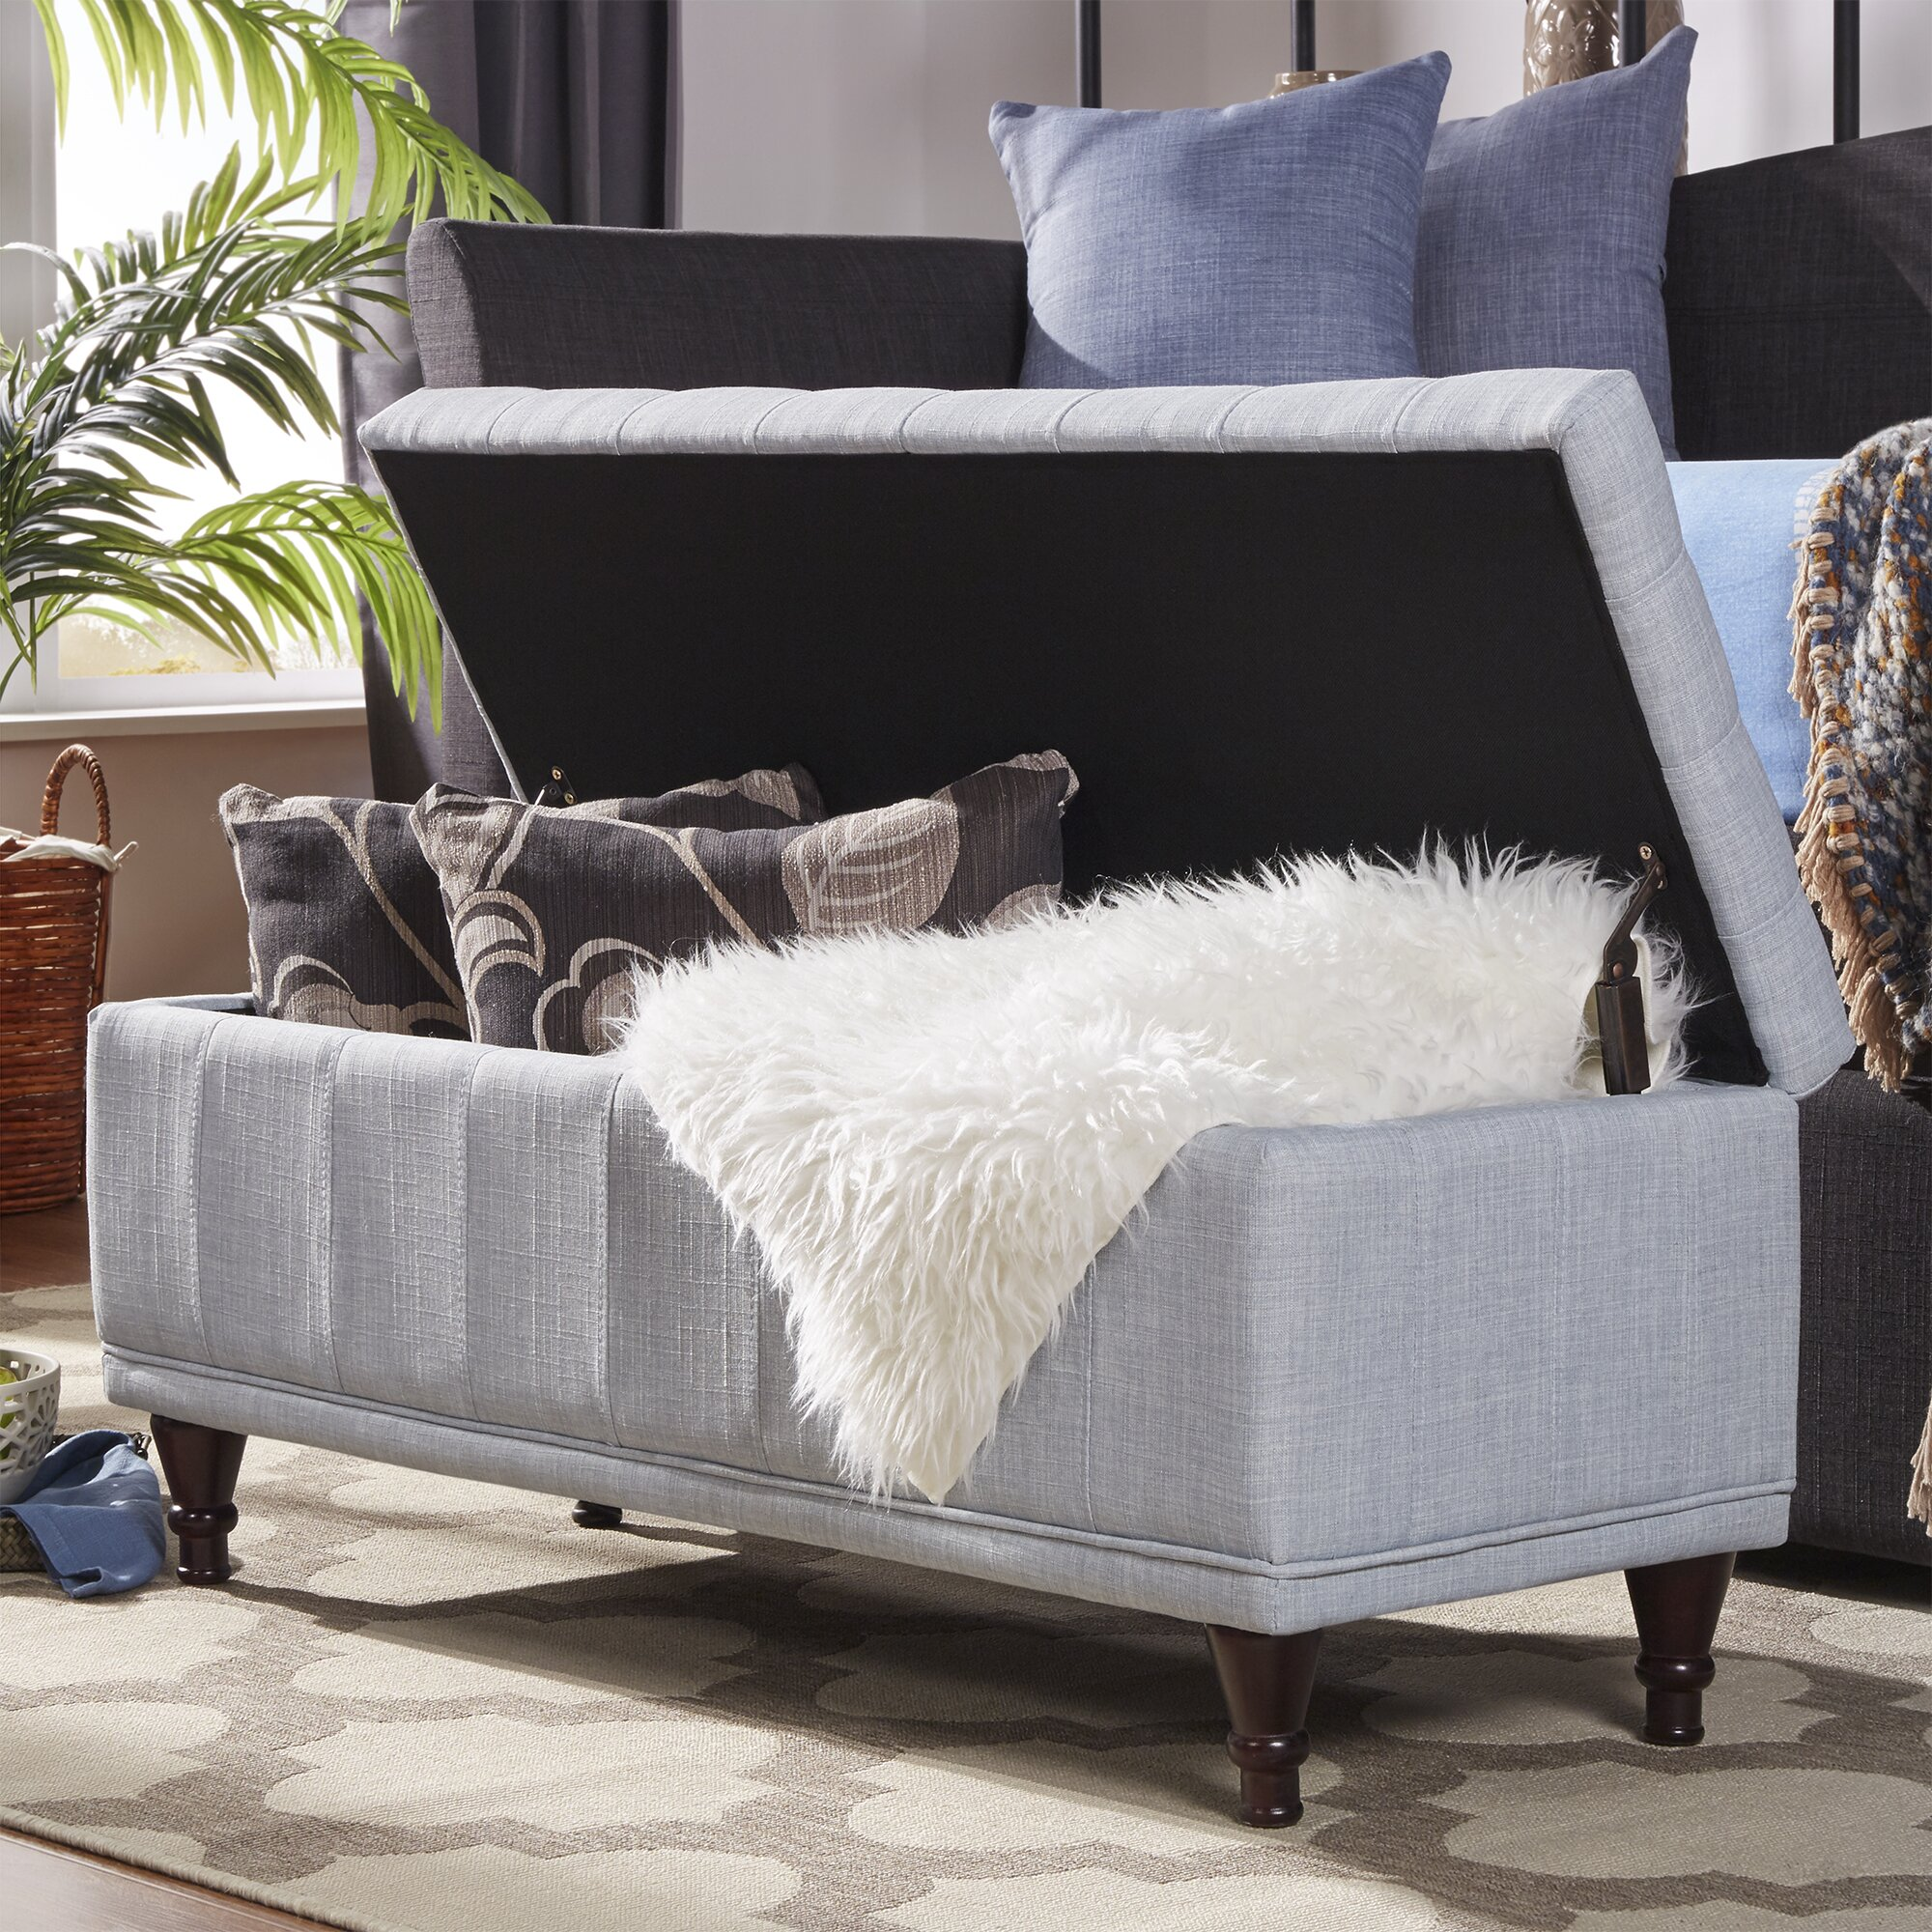 Varian Upholstered Storage Bedroom Bench Reviews: Three Posts Southampton Upholstered Storage Bedroom Bench